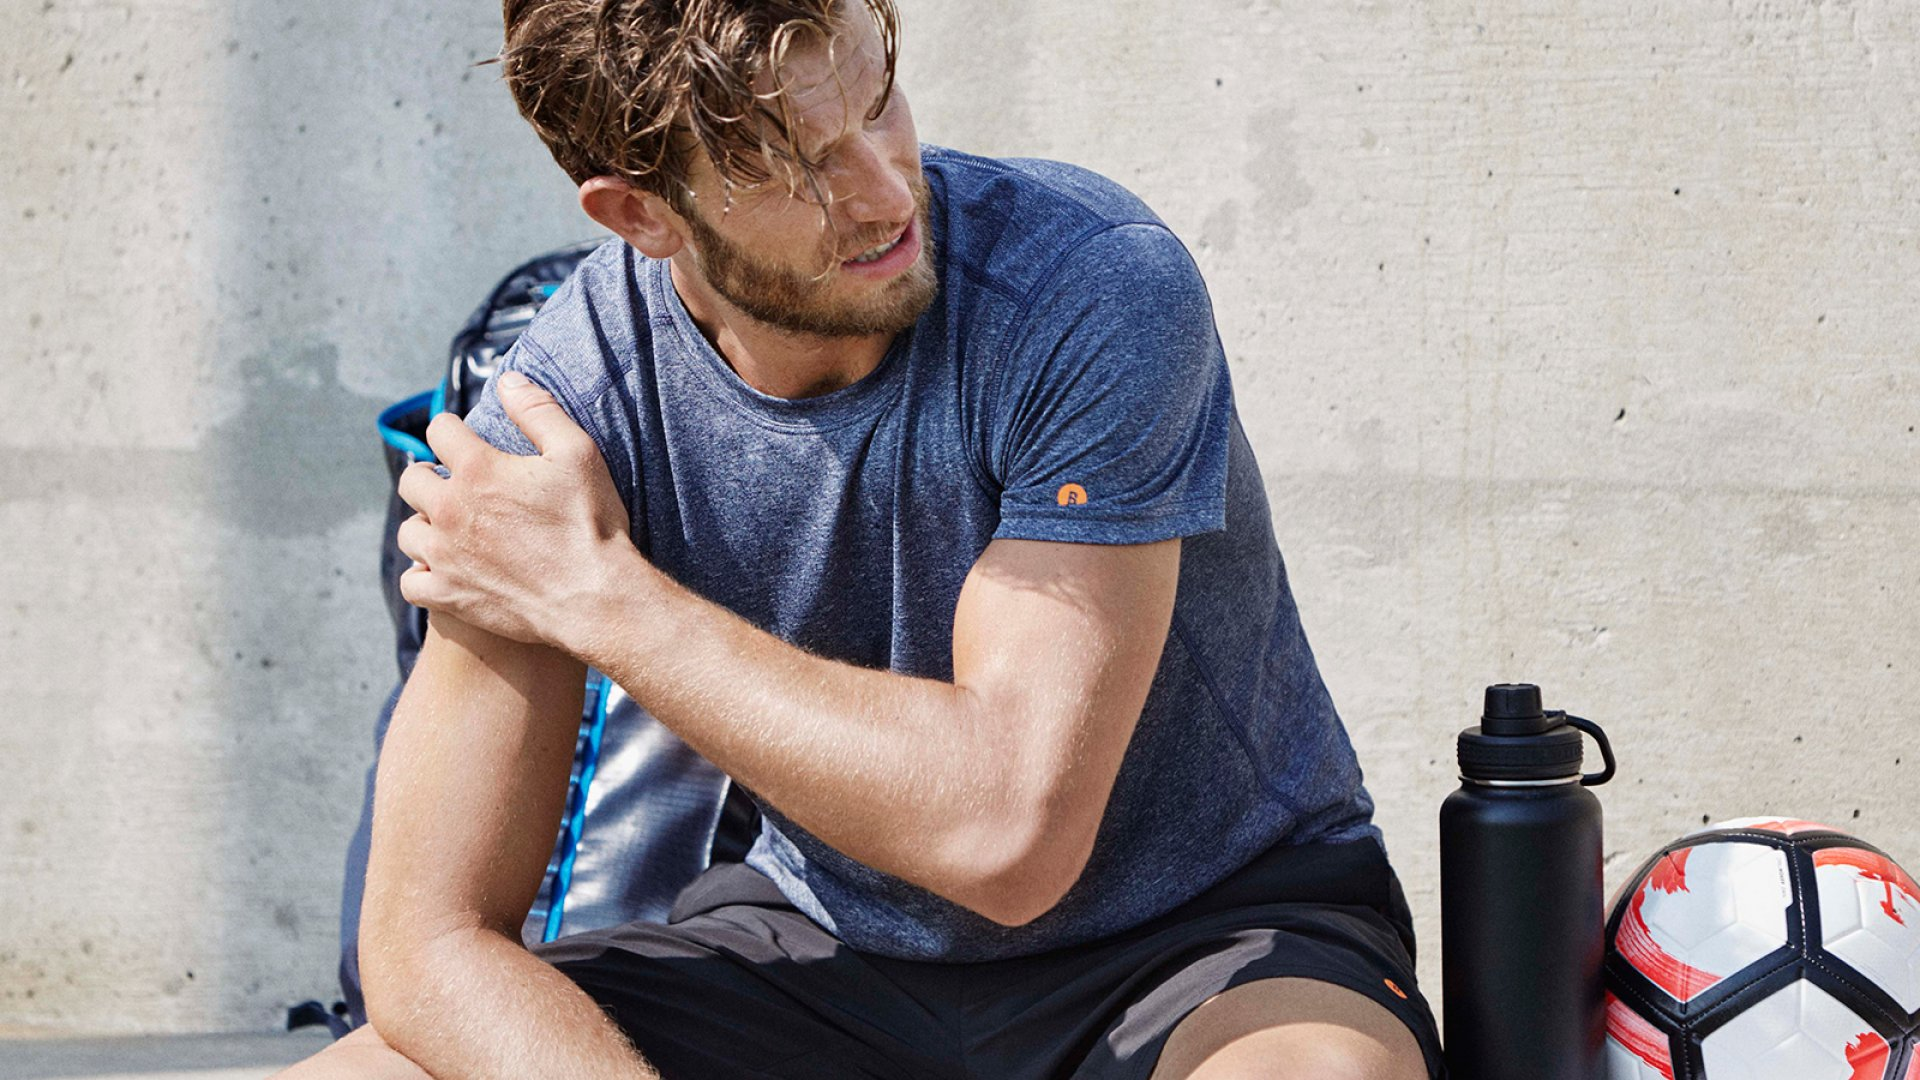 Bonobos's Foray Into Athleisure: Better Late Than Never?